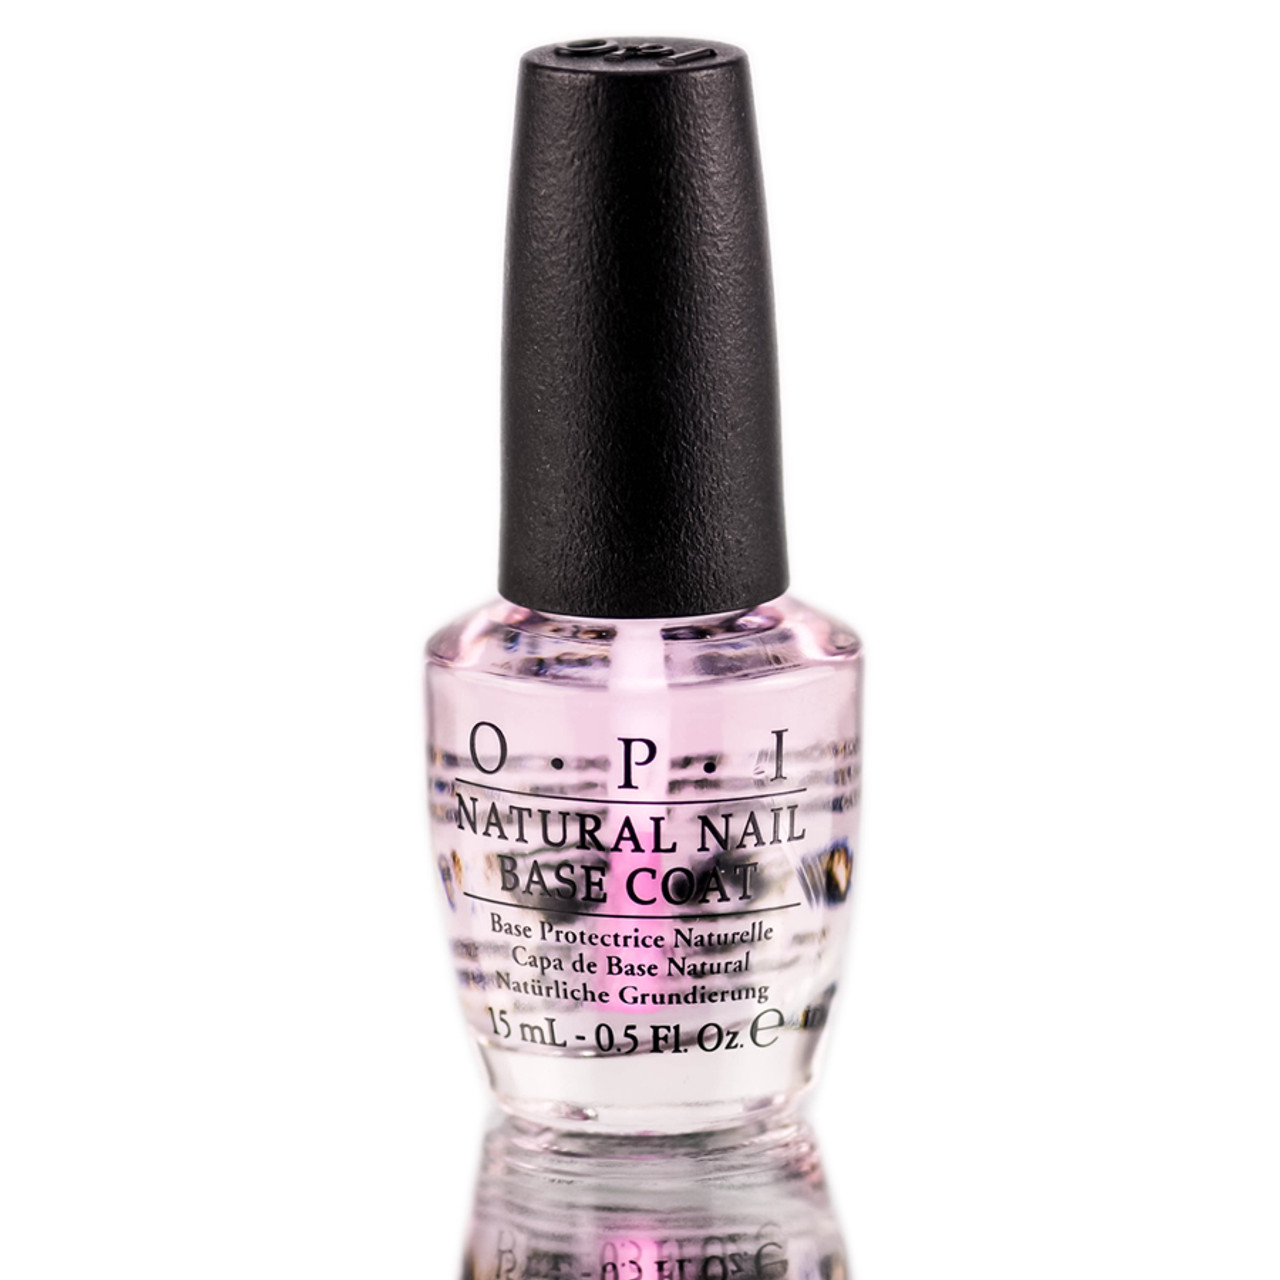 OPI Natural Nail Base Coat - SleekShop.com (formerly Sleekhair)